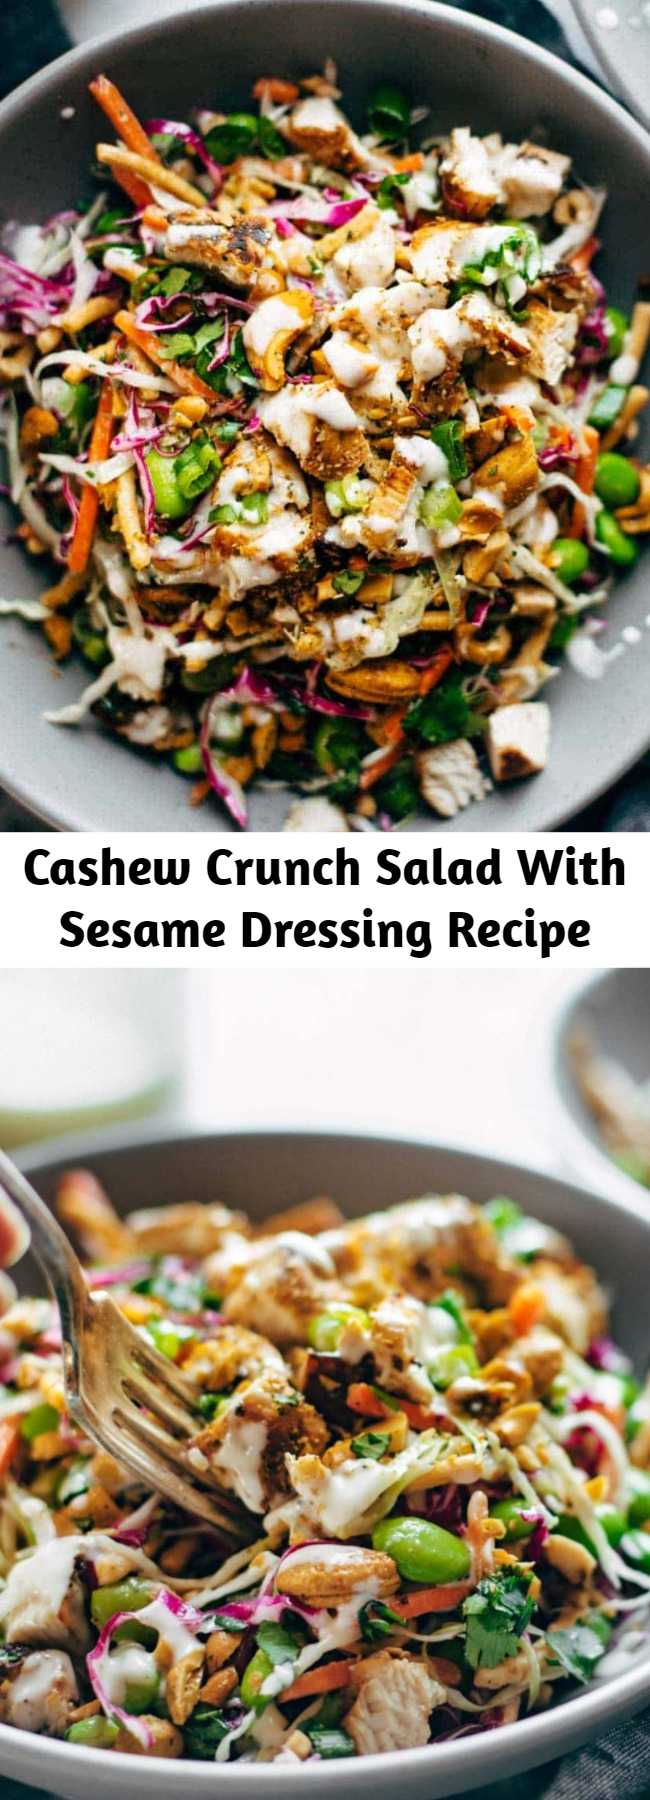 Cashew Crunch Salad With Sesame Dressing Recipe - Cashew Crunch Salad with Sesame Dressing – this is the healthy summer recipe that makes me ACTUALLY WANT TO EAT A SALAD. #healthy #summer #healthysummerrecipe #salad #cashew